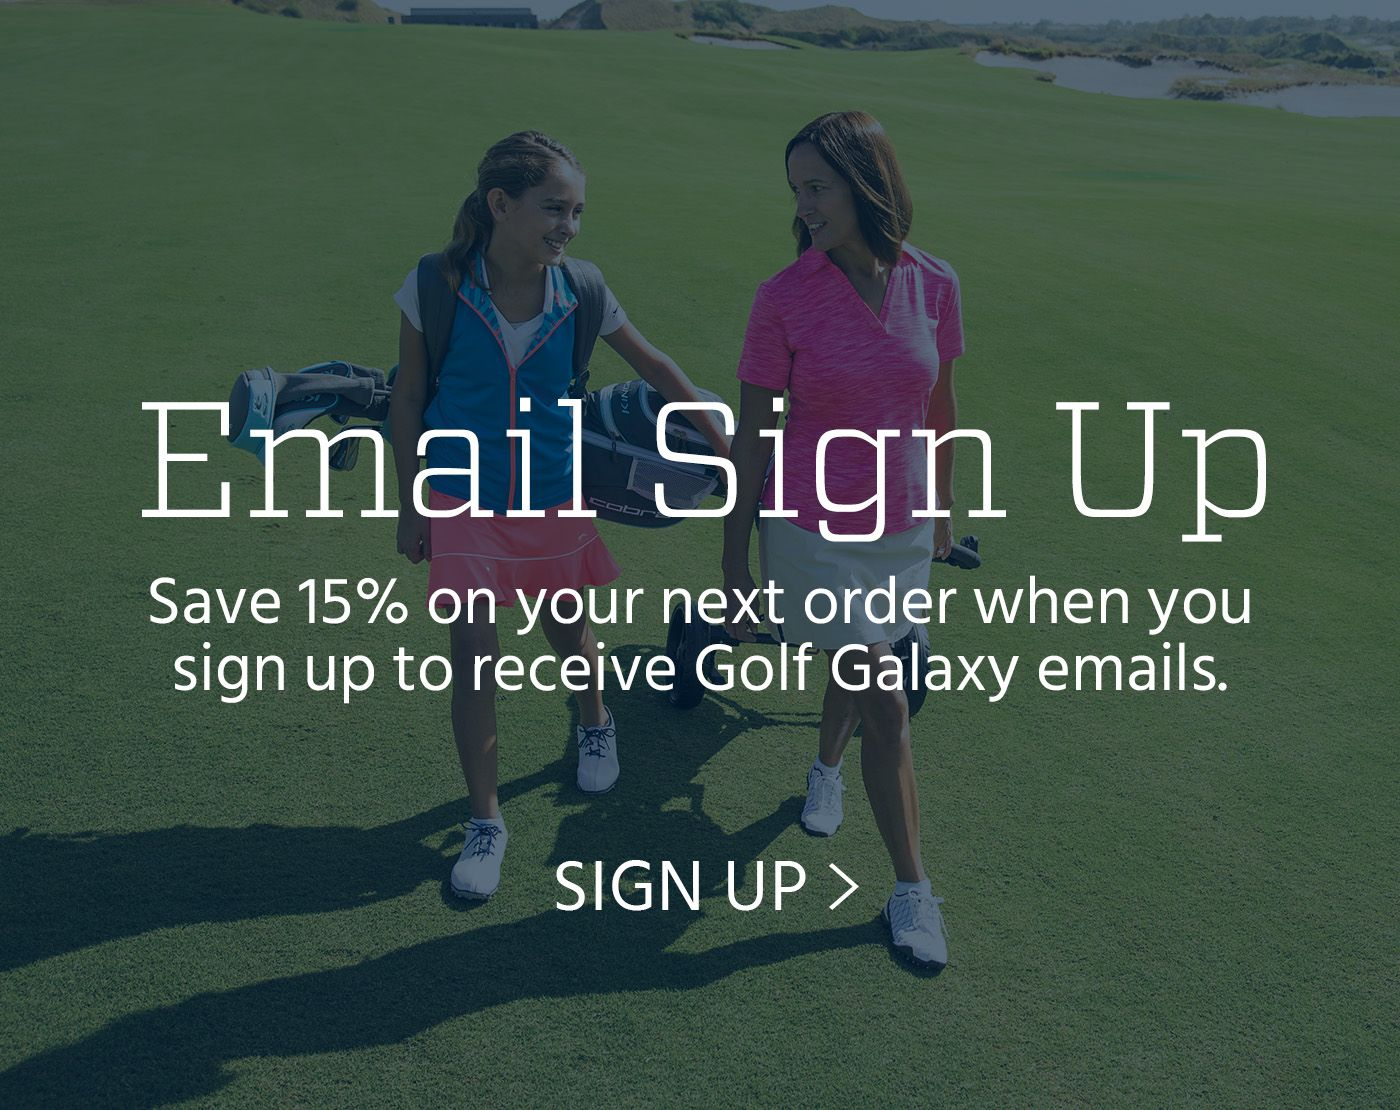 Save 15% on your next order when you sign up to recieve Golf Galaxy emails